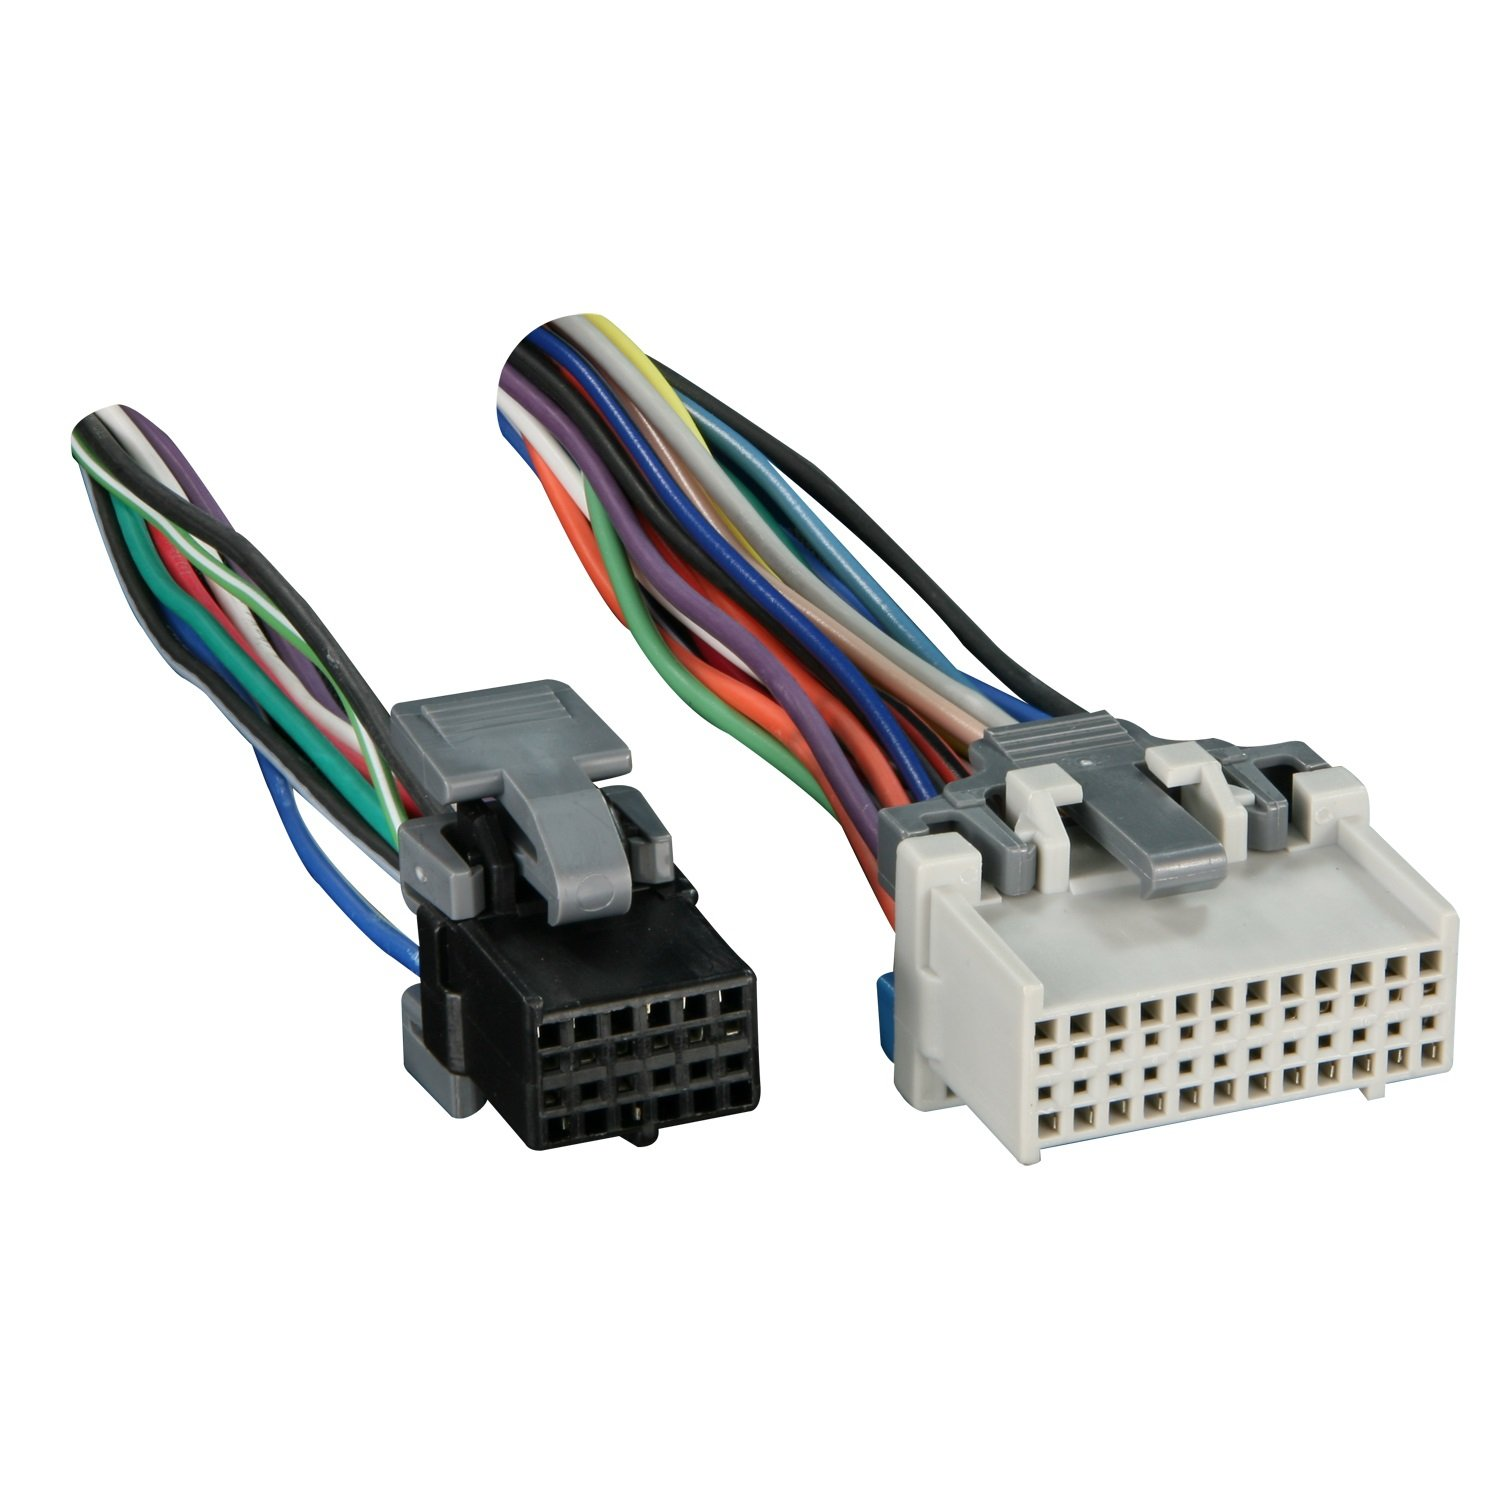 711log4bdML._SL1500_ amazon com metra turbowires 71 2003 1 wiring harness car electronics  at aneh.co